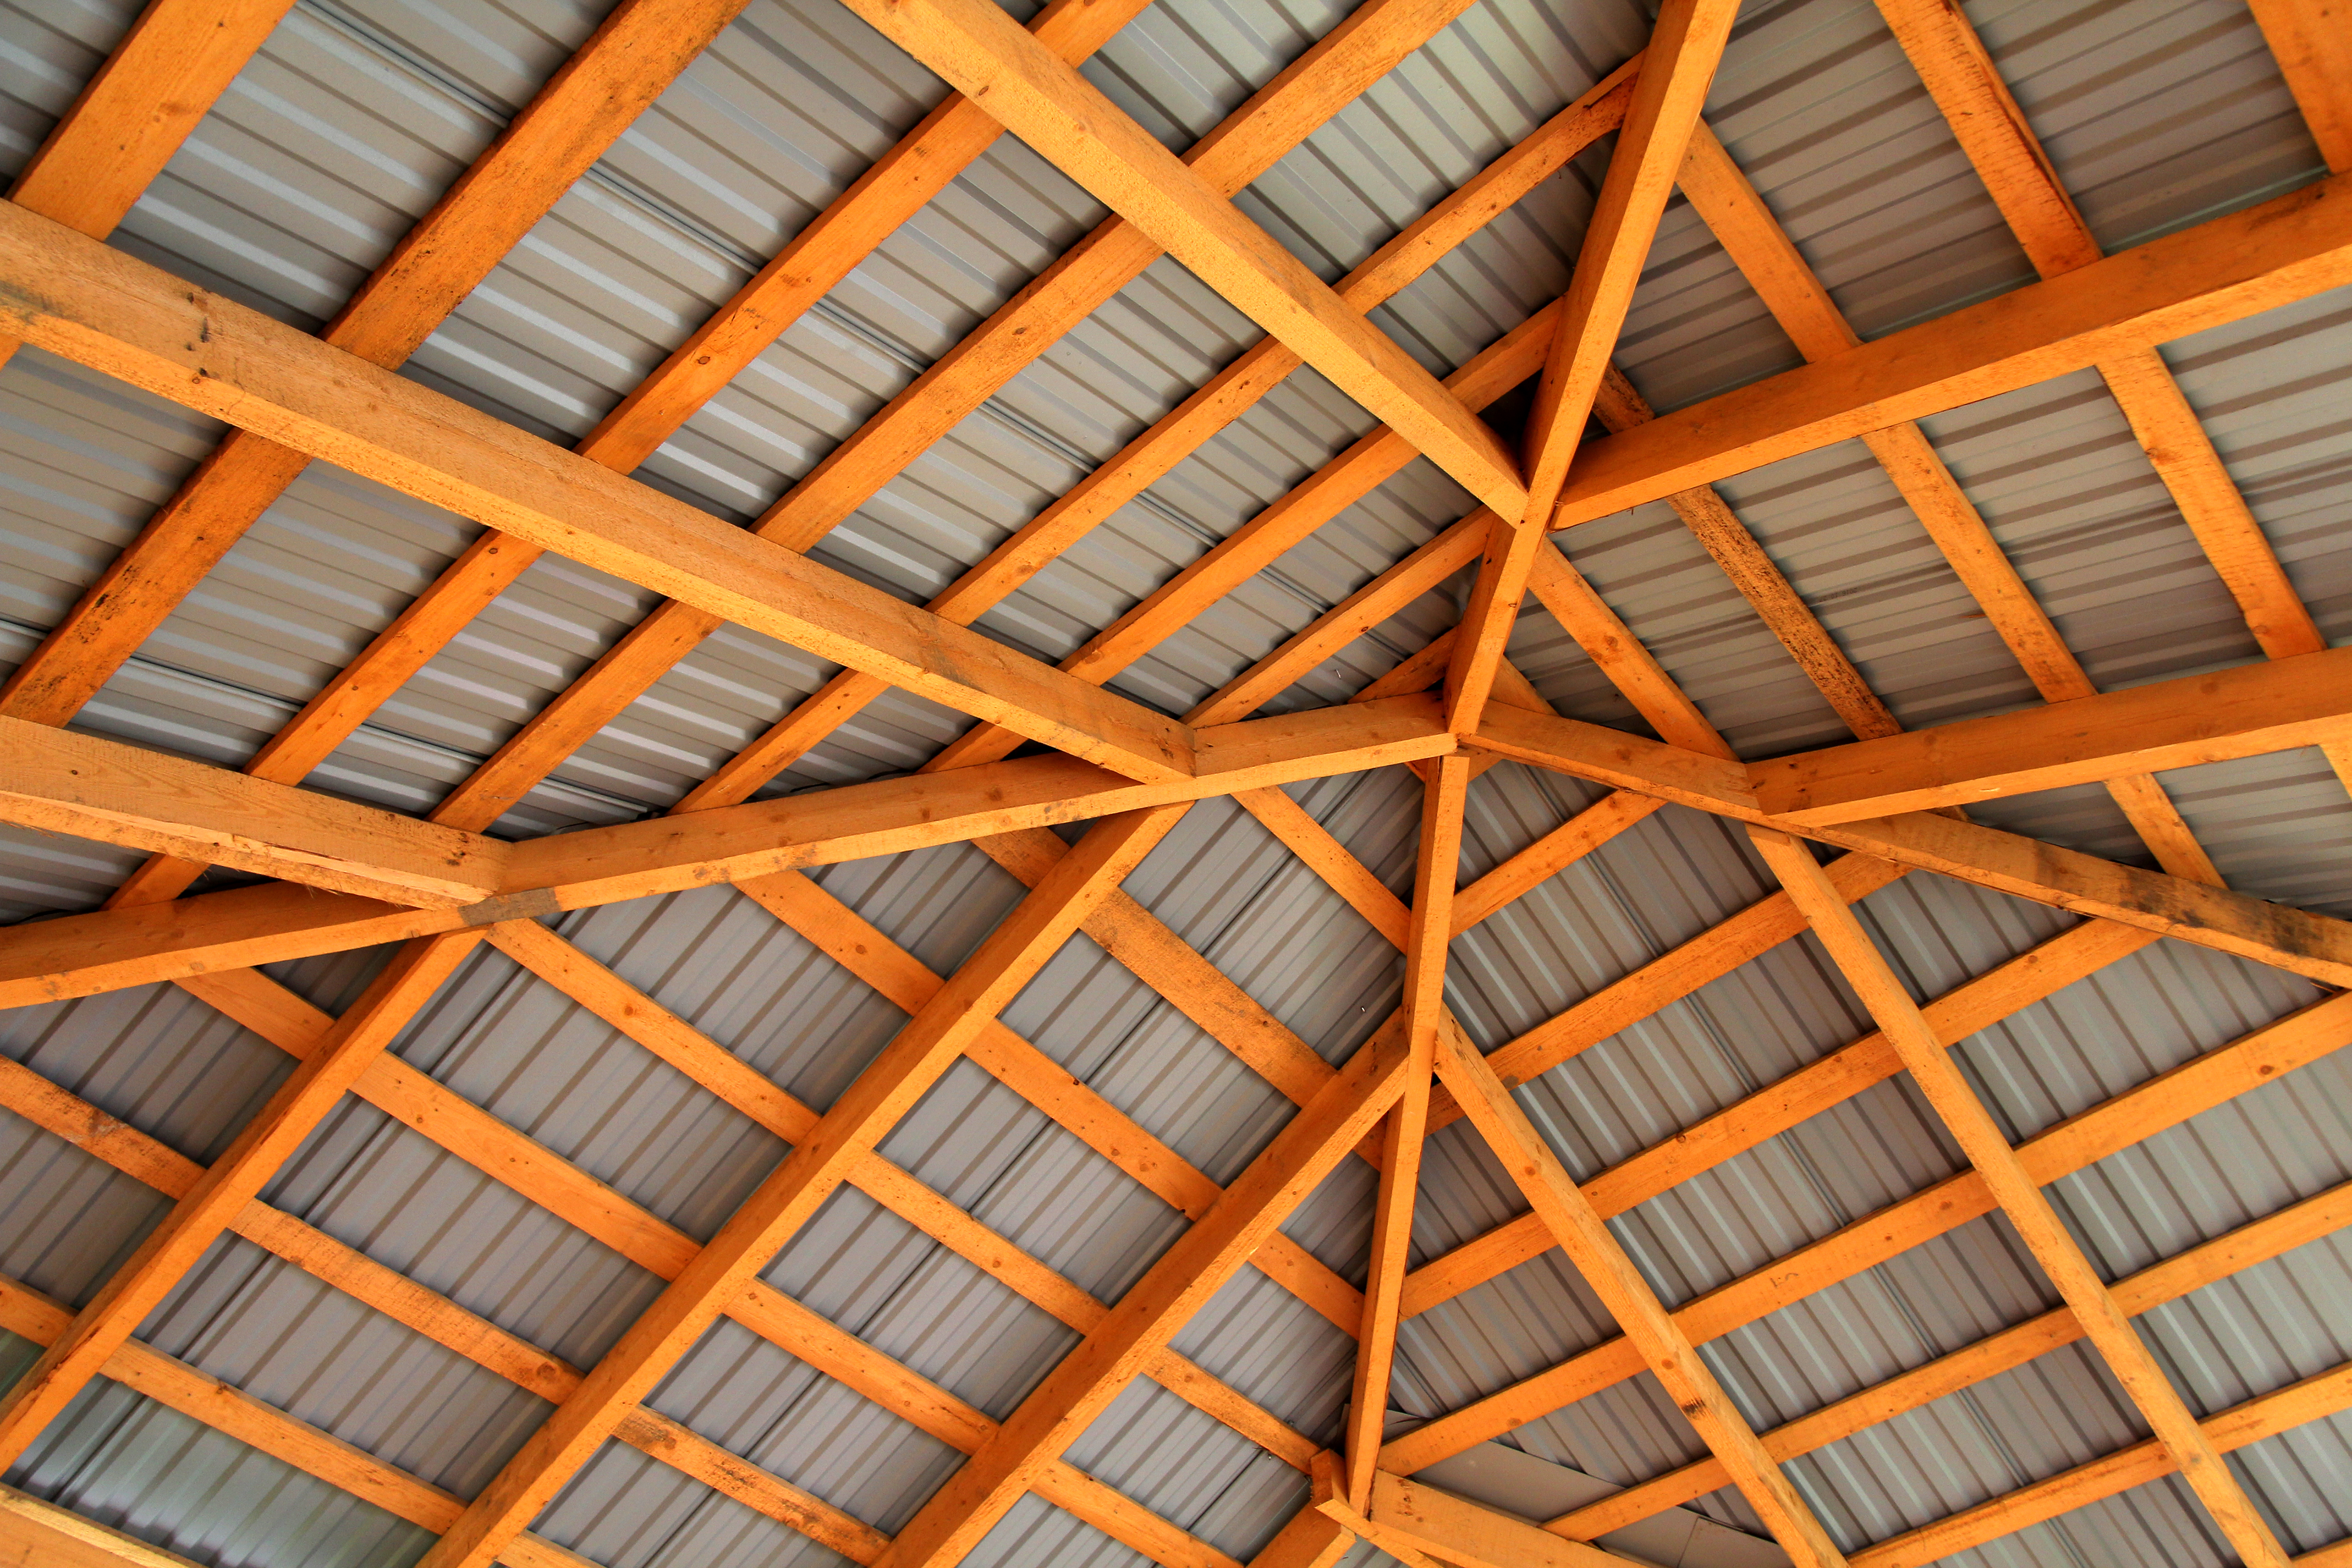 How to Figure Out How Much Plywood to Use on a Roof | Home Guides